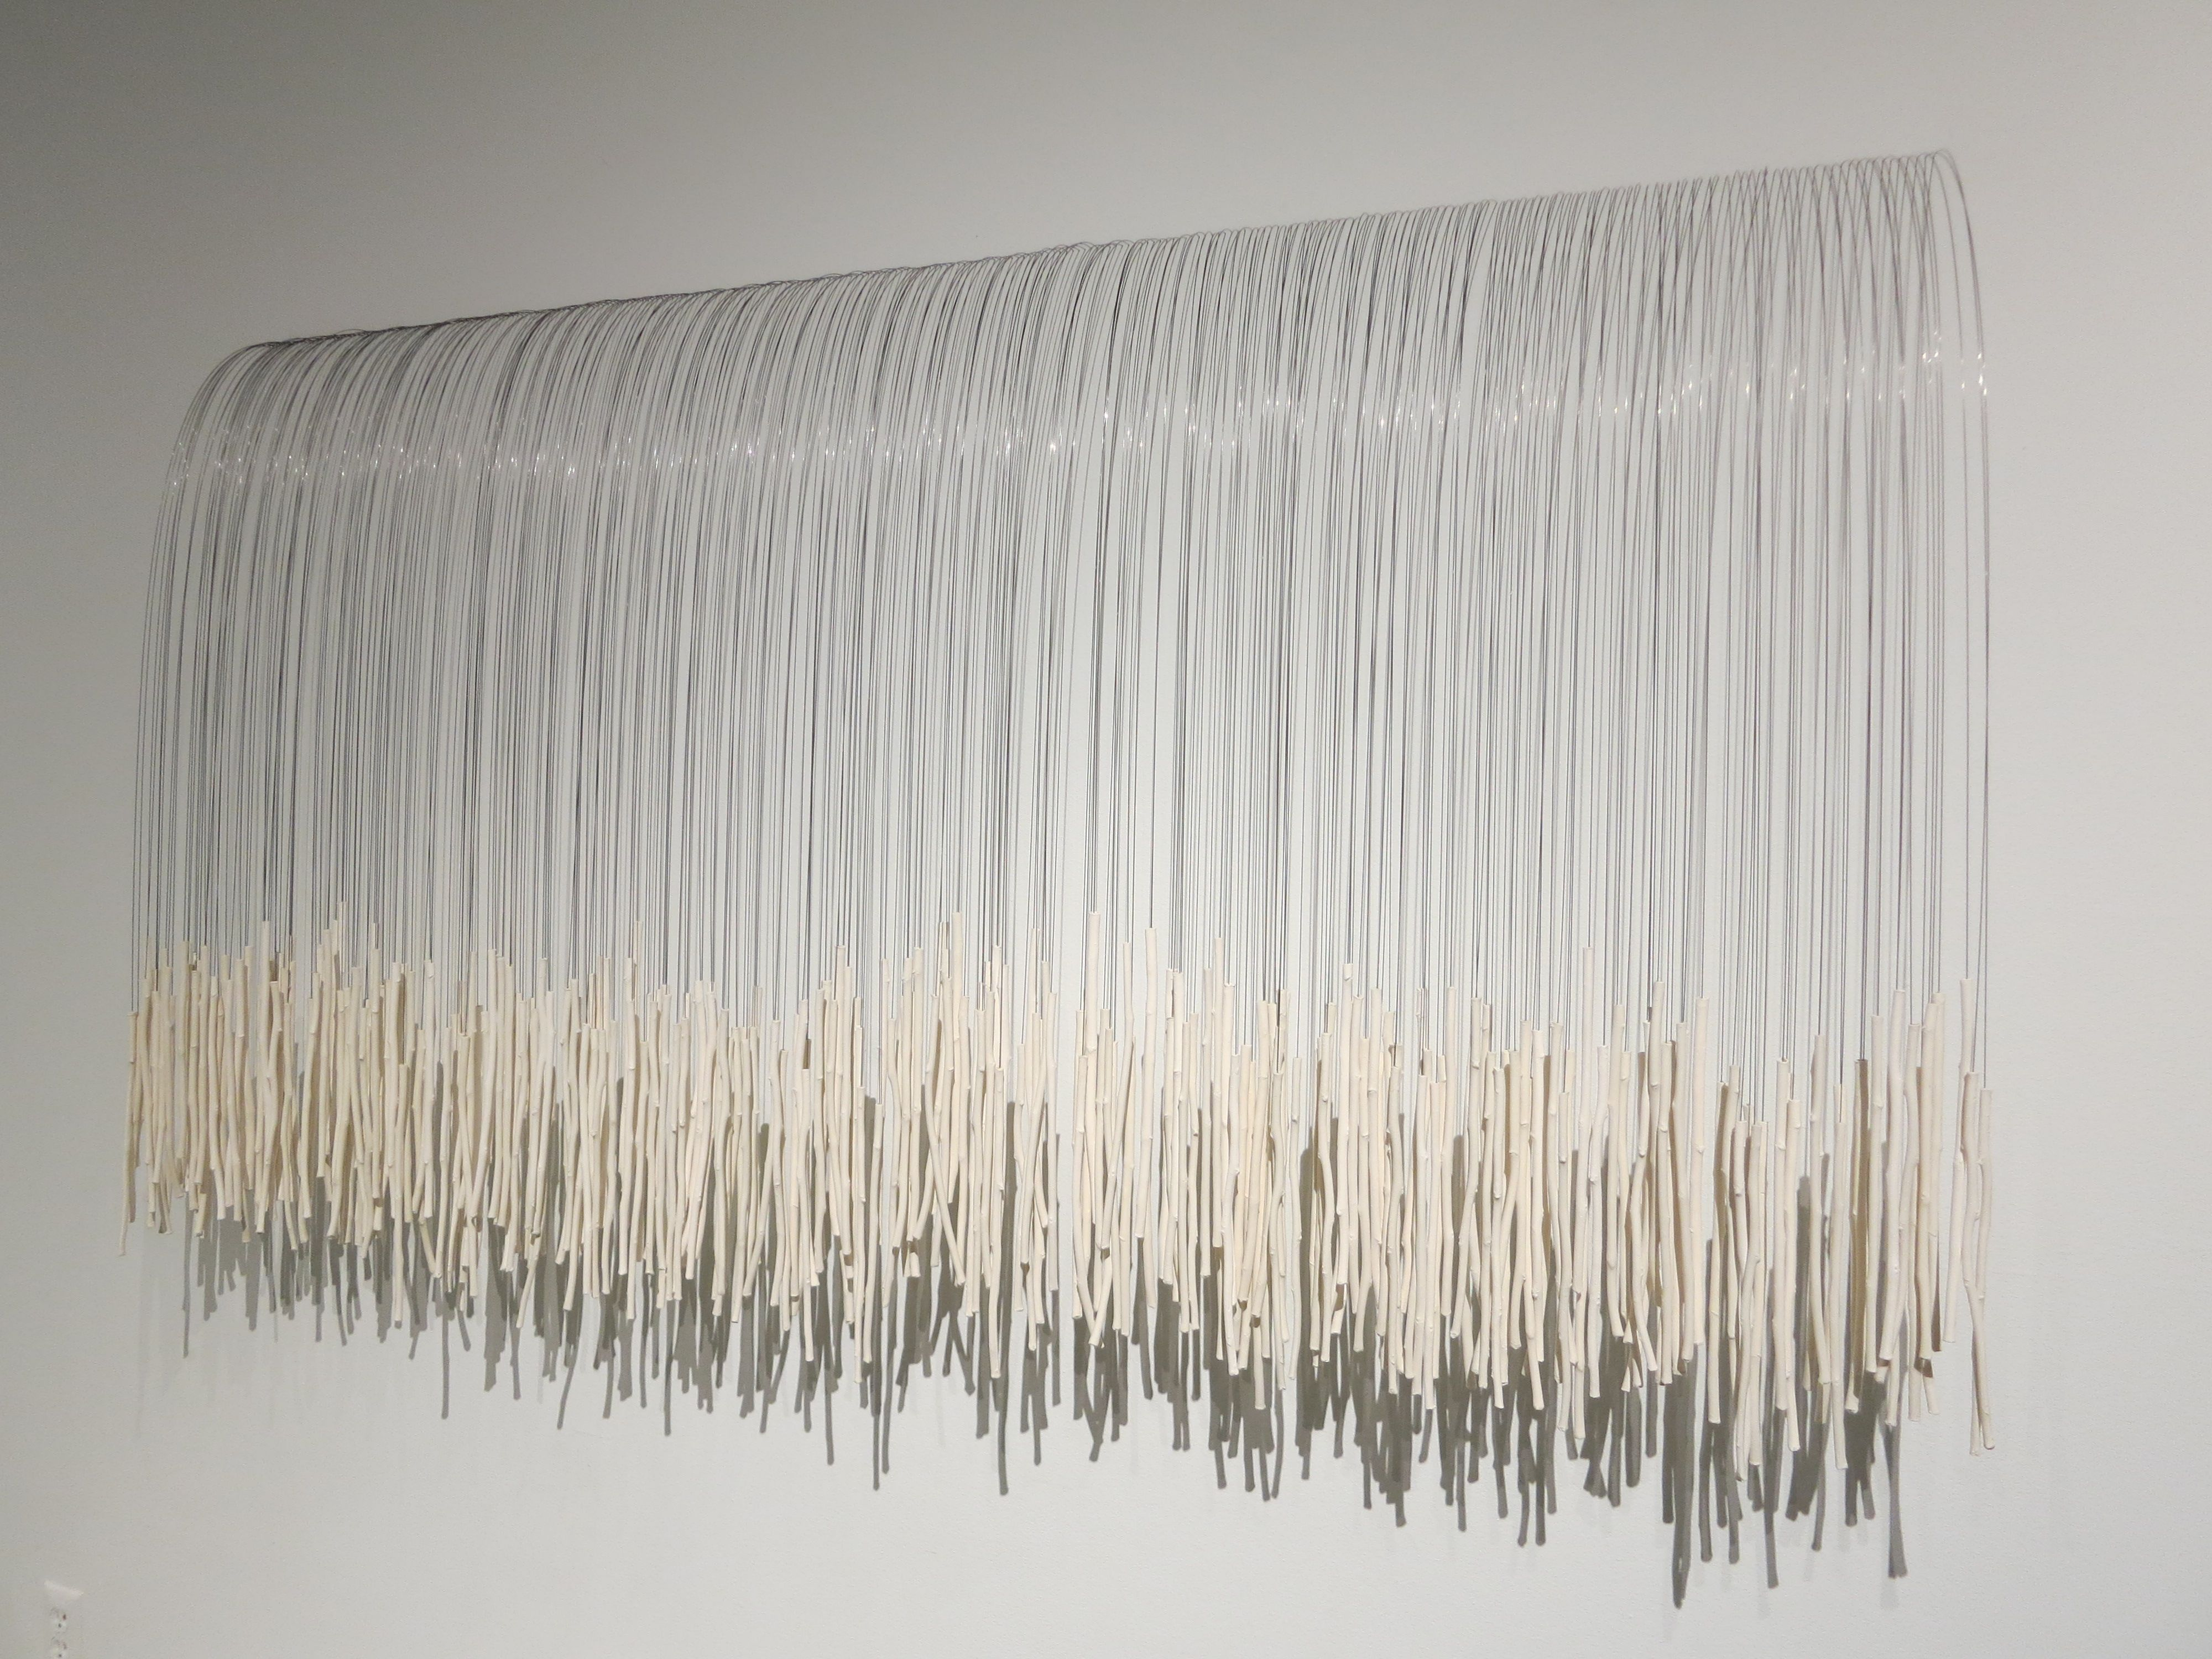 Inch by Inch (to Laura Potter). Slip-cast porcelain, music wire ...